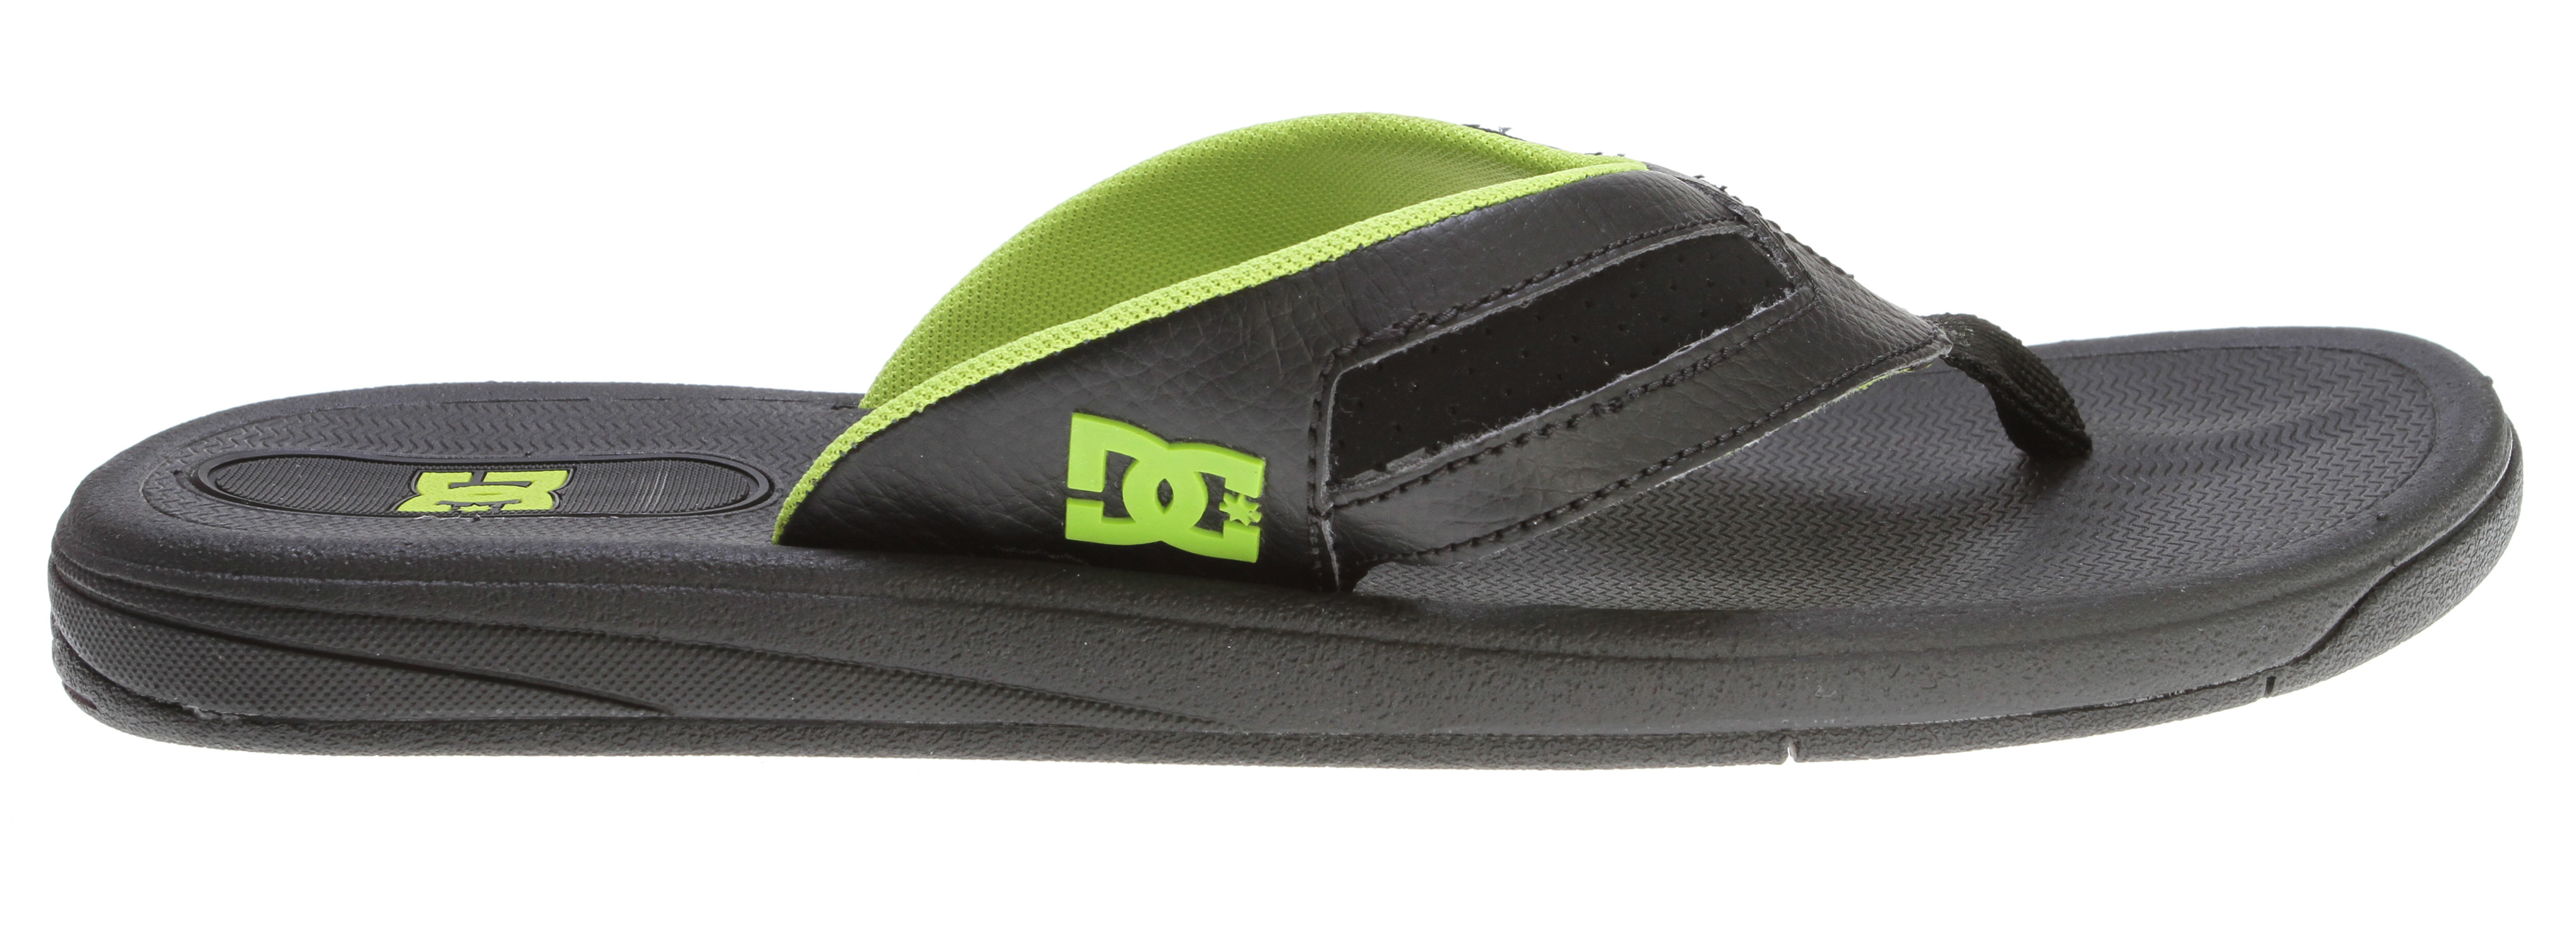 "Skateboard Key Features of the DC Cabo Sandals: Nubuck or leather upper with perf detail Cushioned CMEVA footbed Soft lining DC's trademarked ""Pill Pattern"" rubber outsole - $32.00"